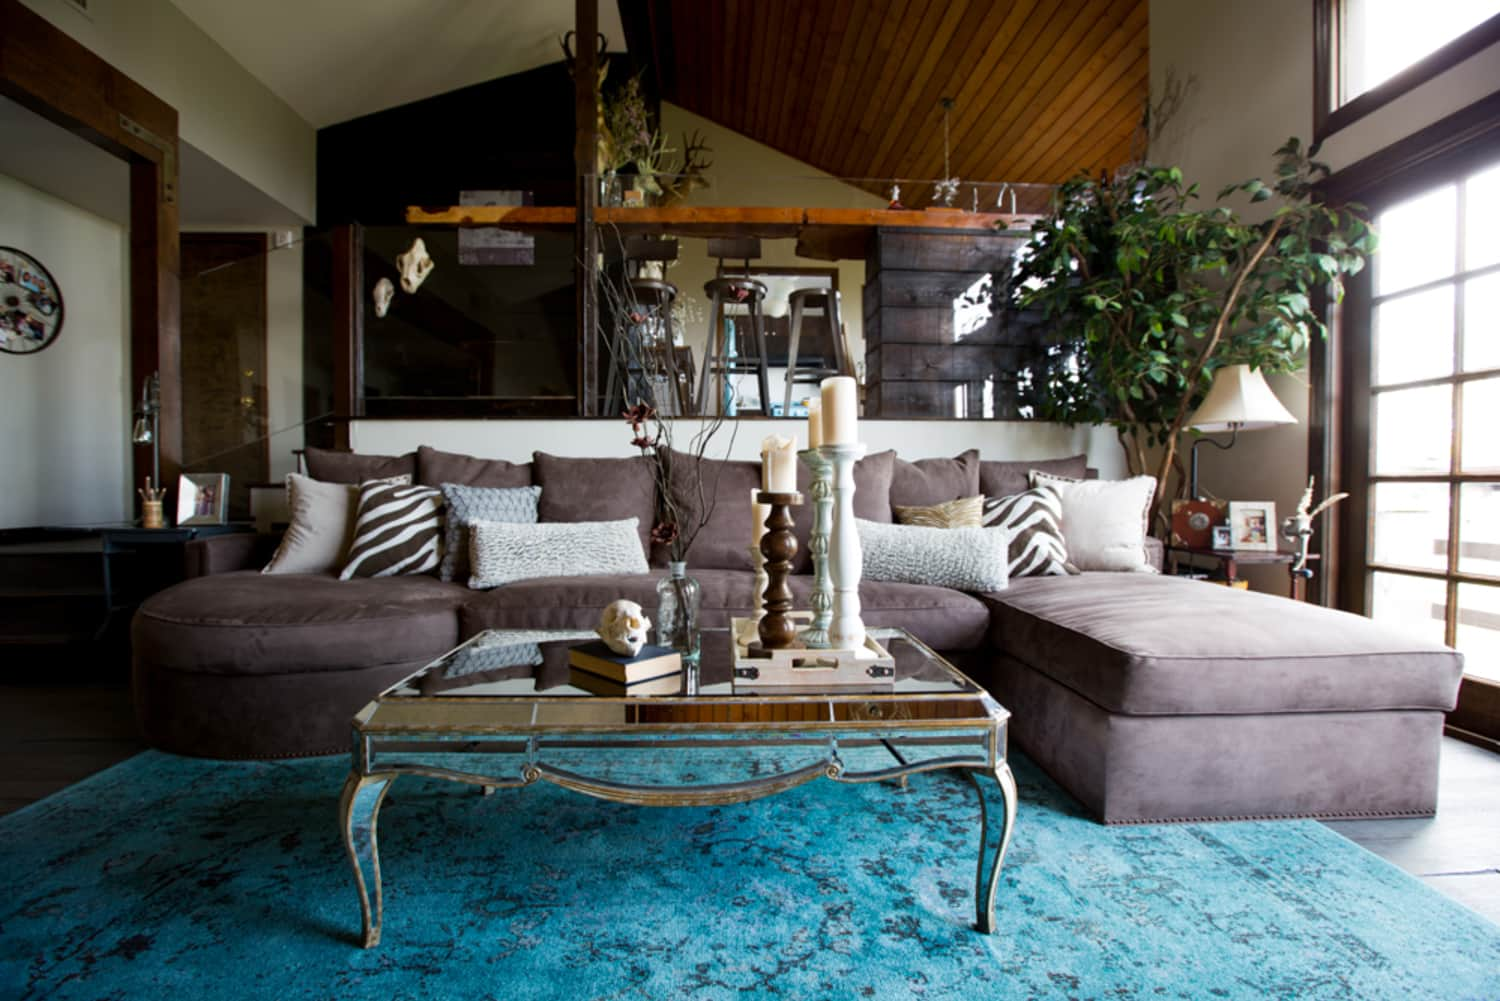 Rustic Meets Luxe in a Los Angeles Home